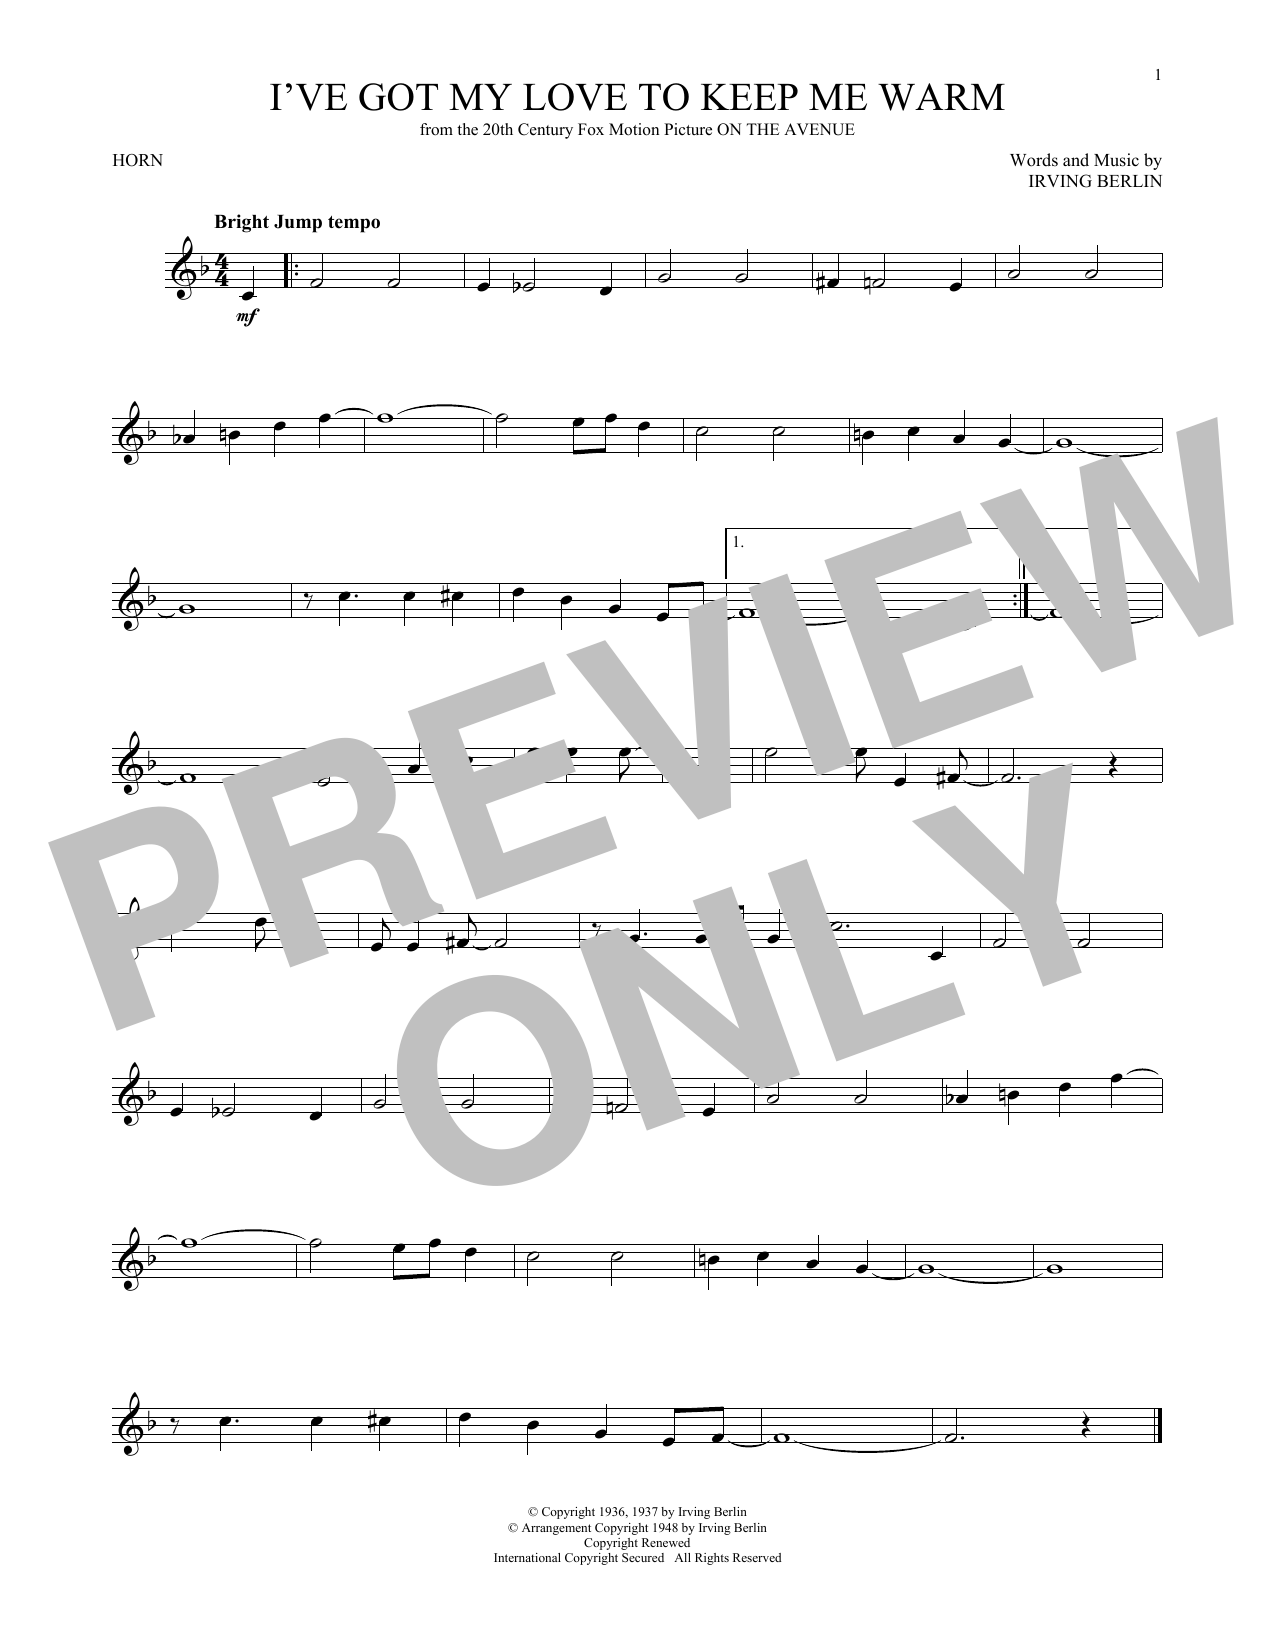 I've Got My Love To Keep Me Warm (French Horn Solo)